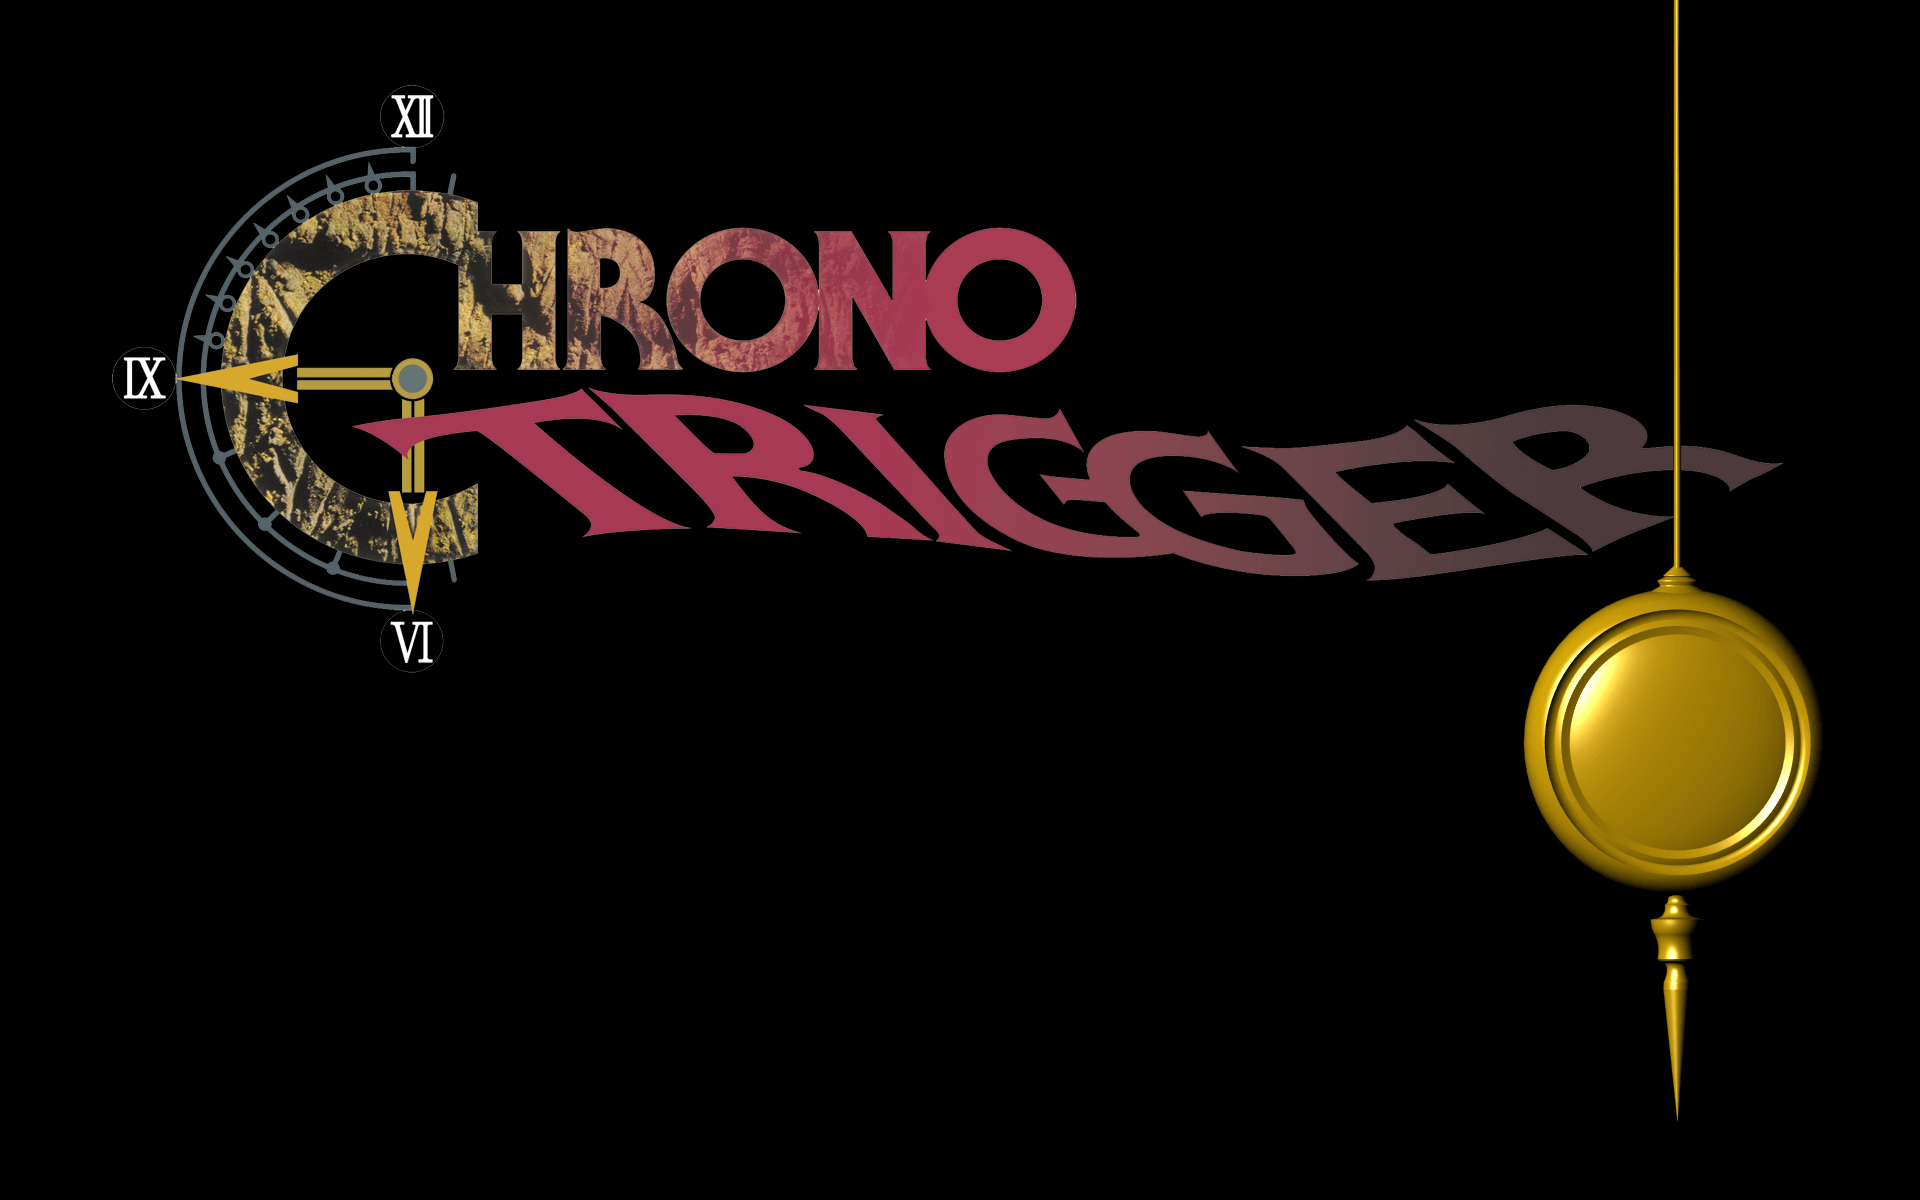 Chrono Trigger Wallpapers 1280x1024 Pictures